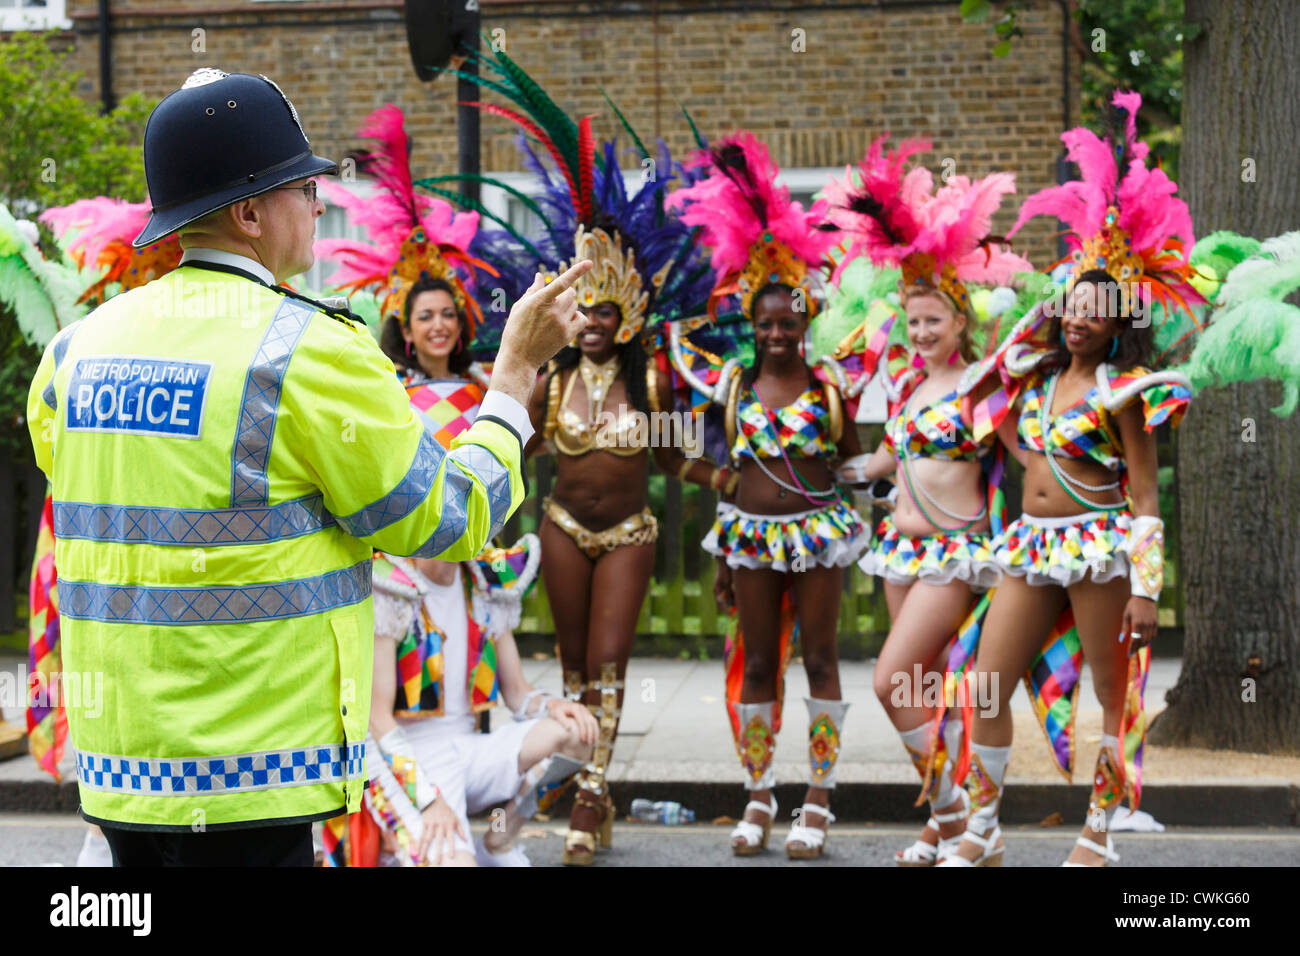 Paraiso School of Samba at Notting Hill Carnival, police officer with samba dancers - Stock Image